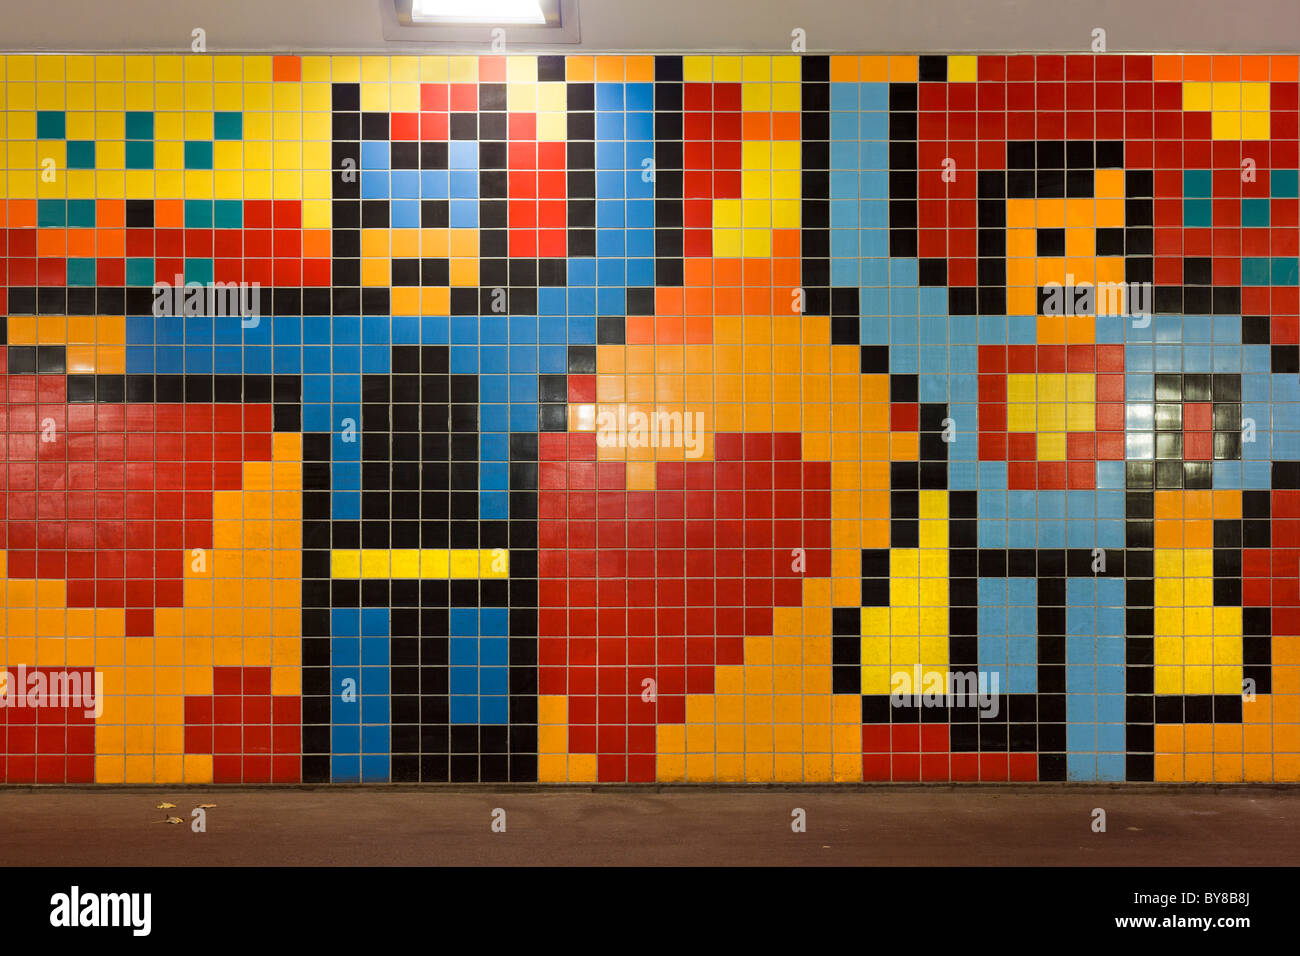 A Batman & Robin mural mosaic inside so-called Pixel Poort Bicycle Tunnel connecting Amsterdam and Zaandam The - Stock Image